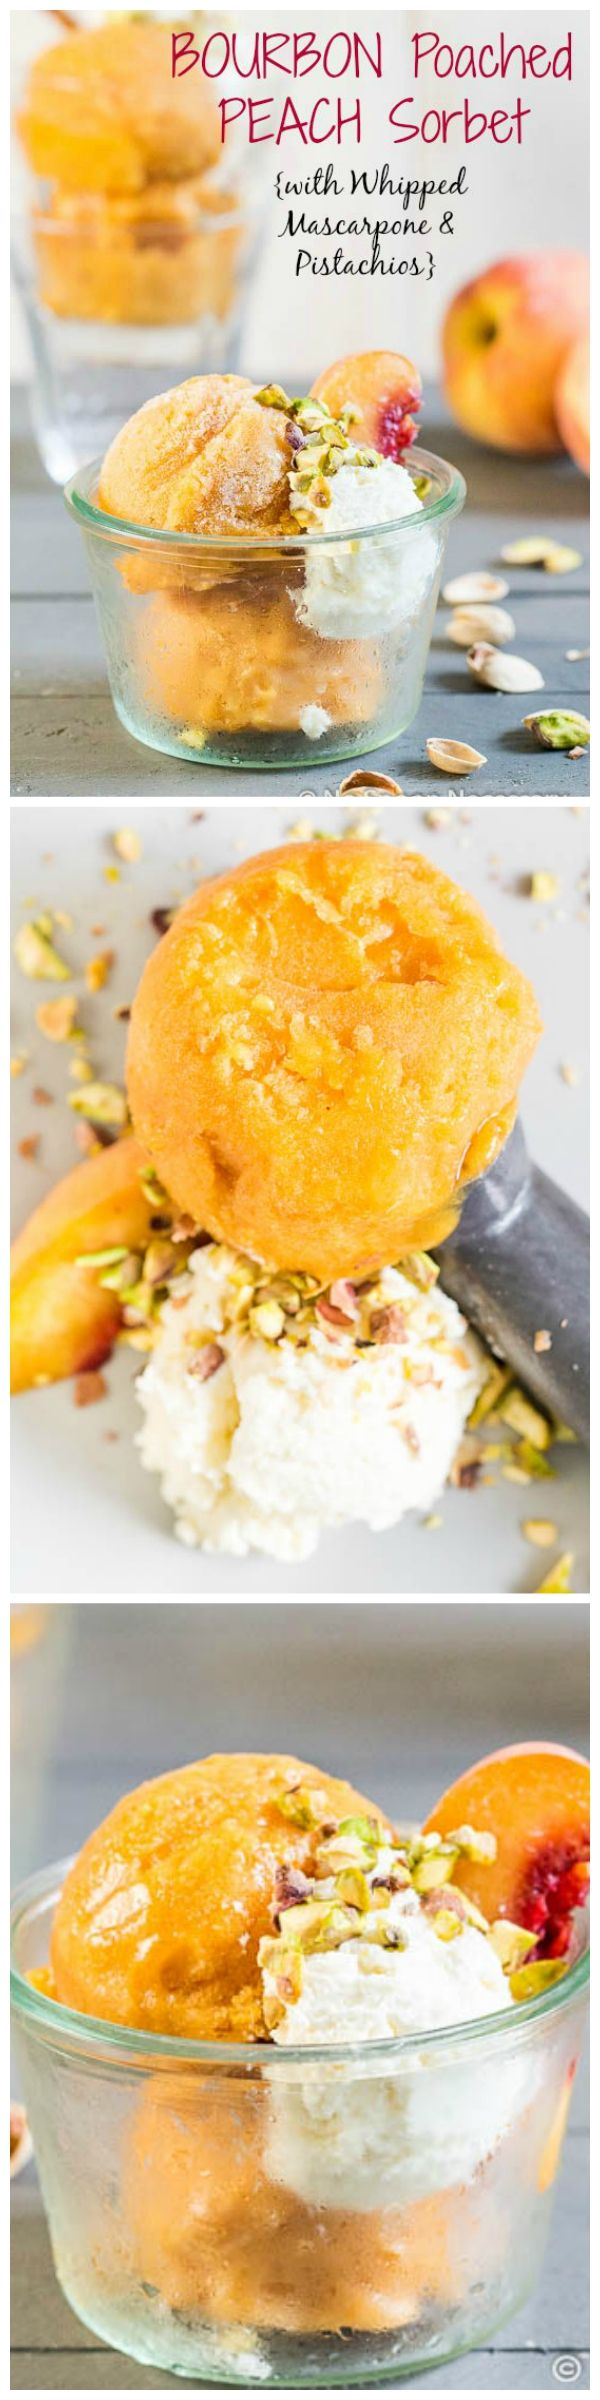 No Churn Bourbon Poached Peach Sorbet with Whipped Bourbon-Mascarpone ...